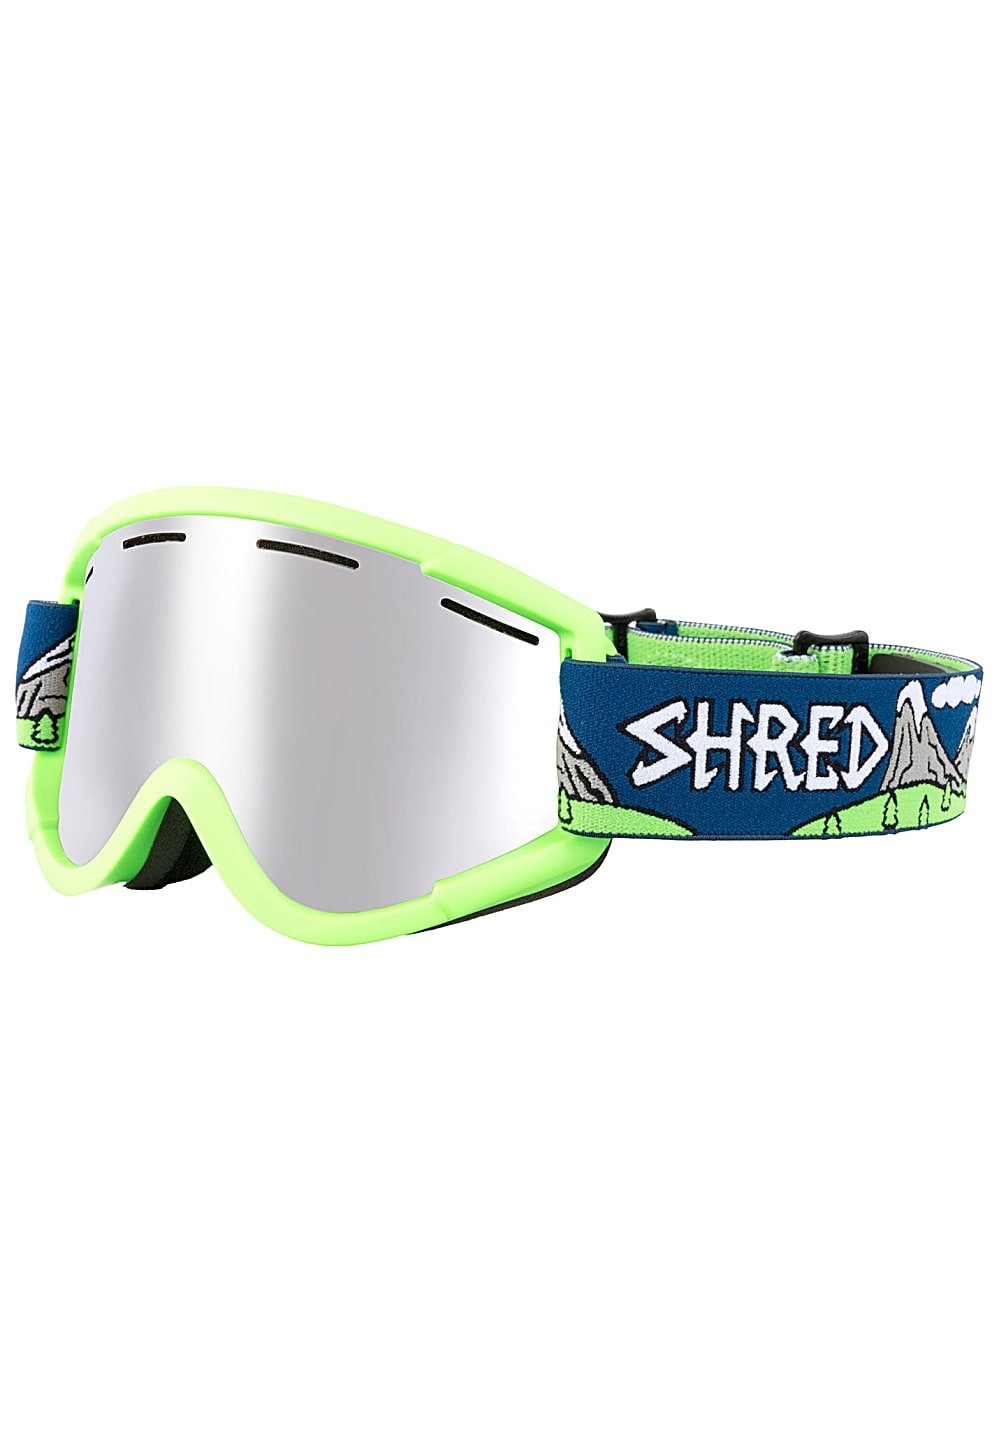 Shred Nastify Snowboardbrille - Grün